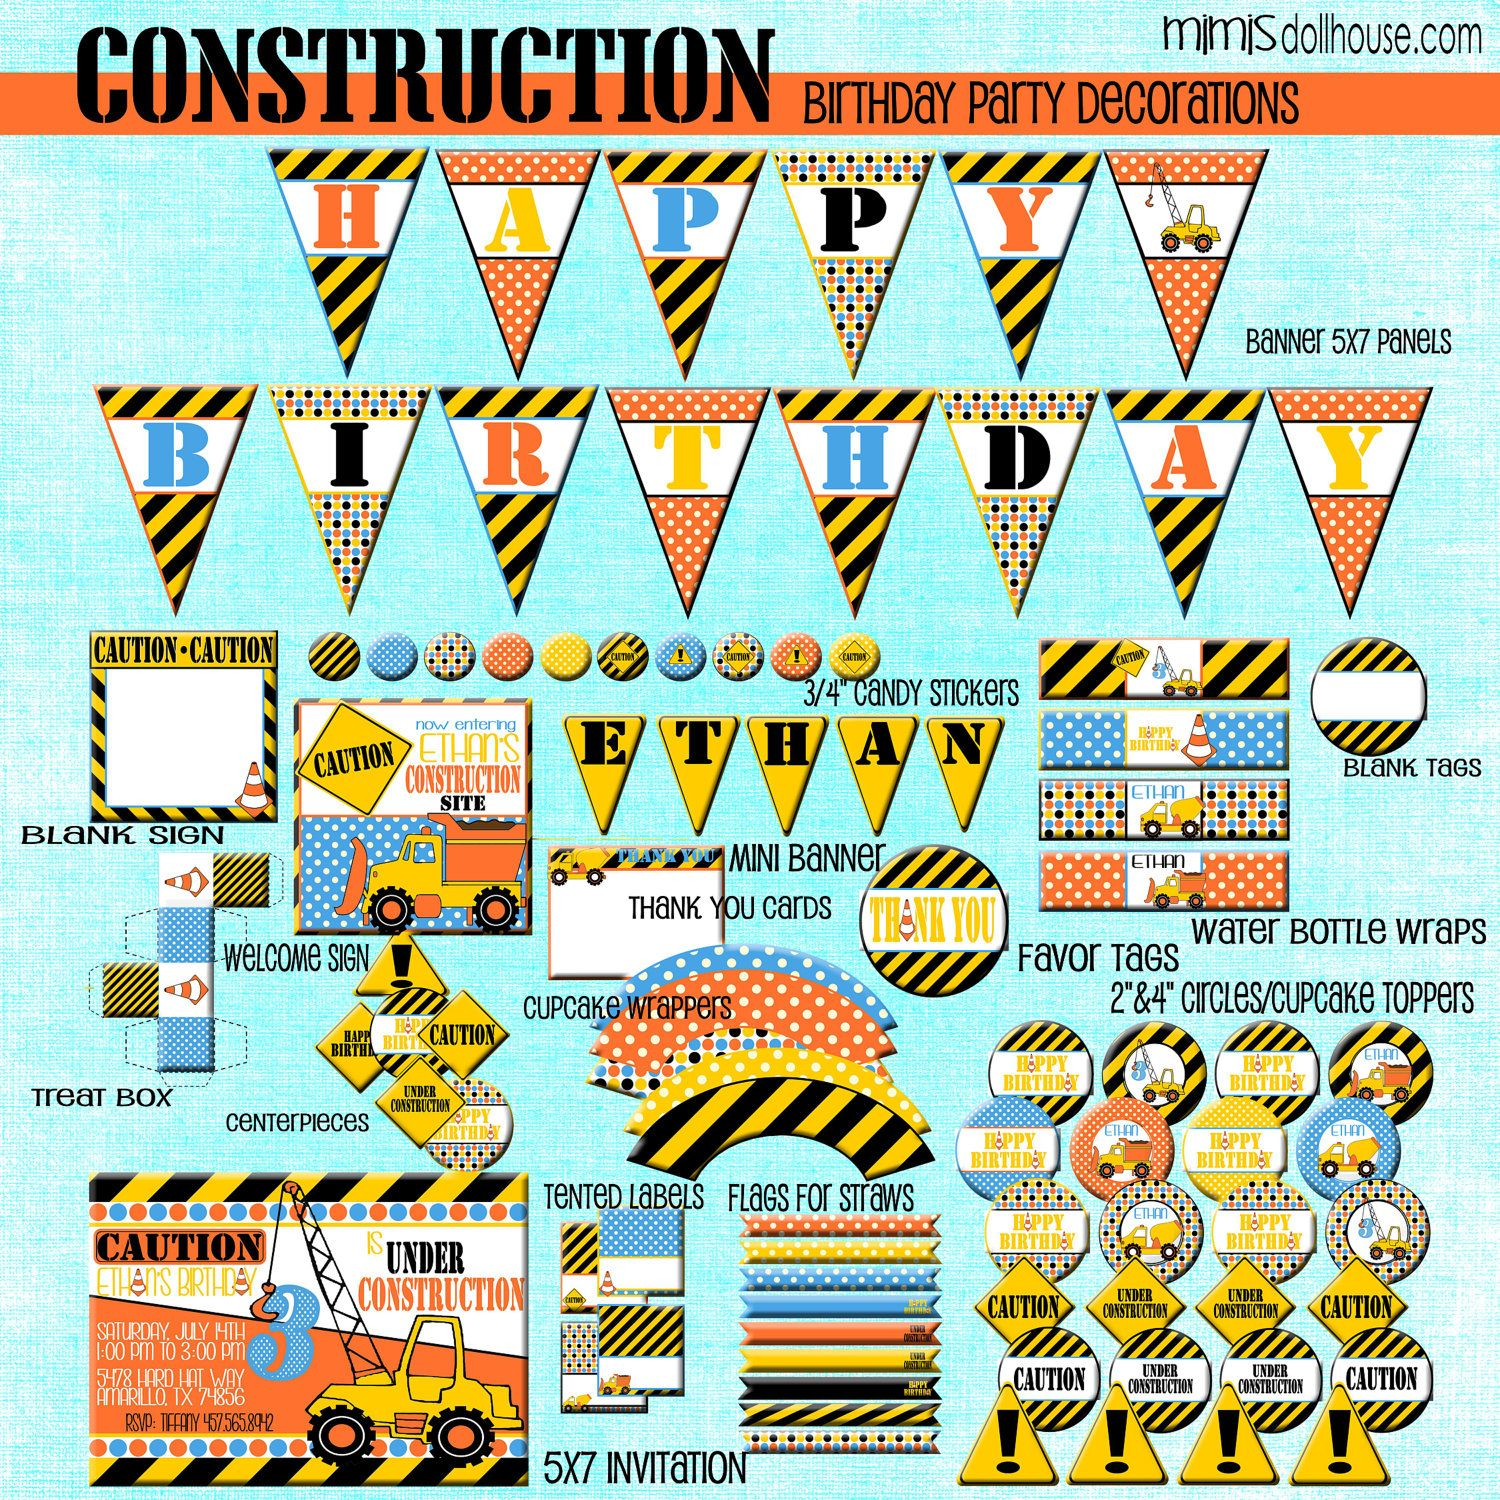 Construction Birthday Party Decorations Construction Party Decorations Printable Construction Birthday